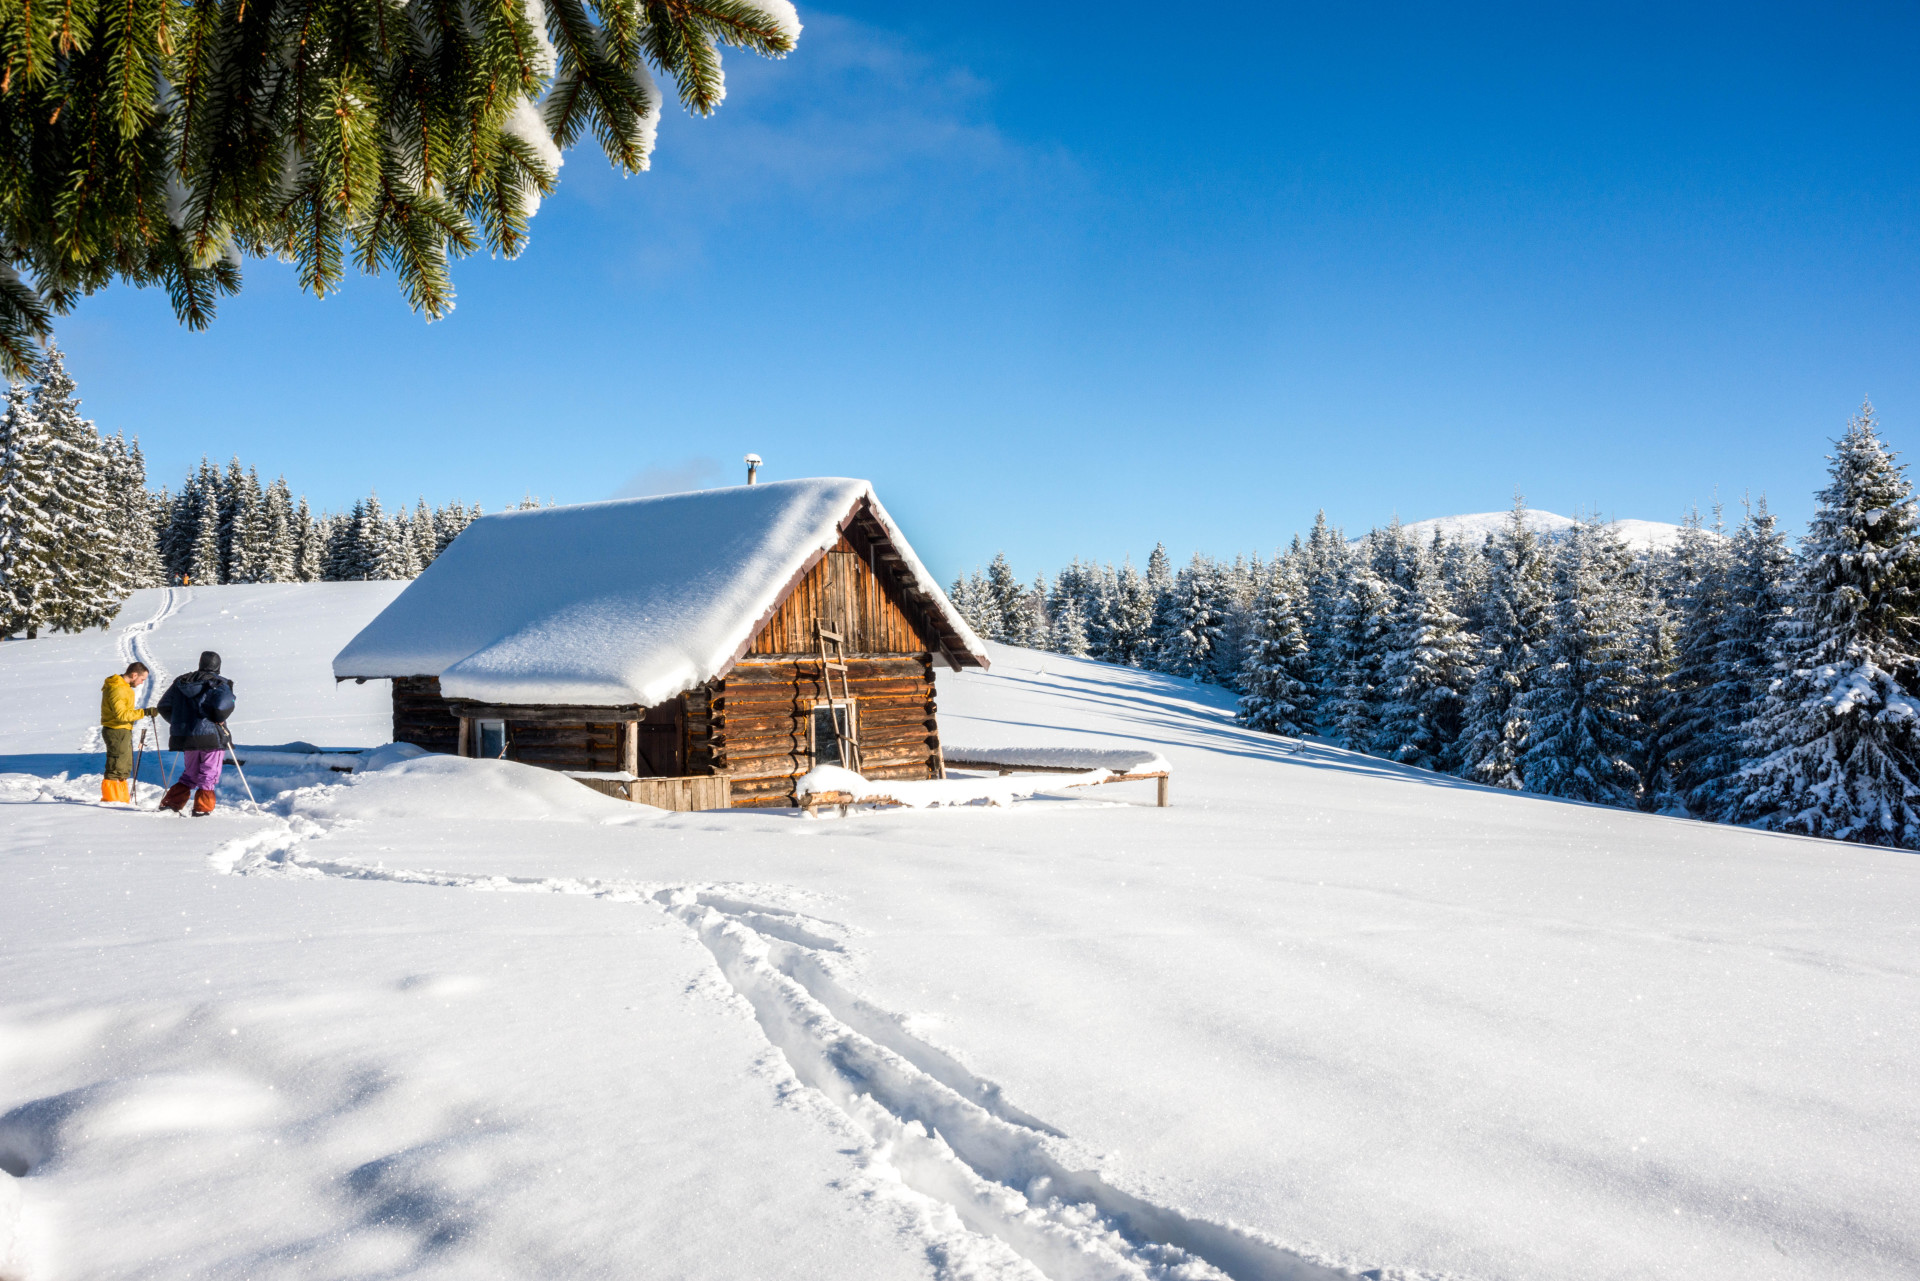 clear-and-sunny-winter-day-shutterstock_343073753-2-e1485534032190